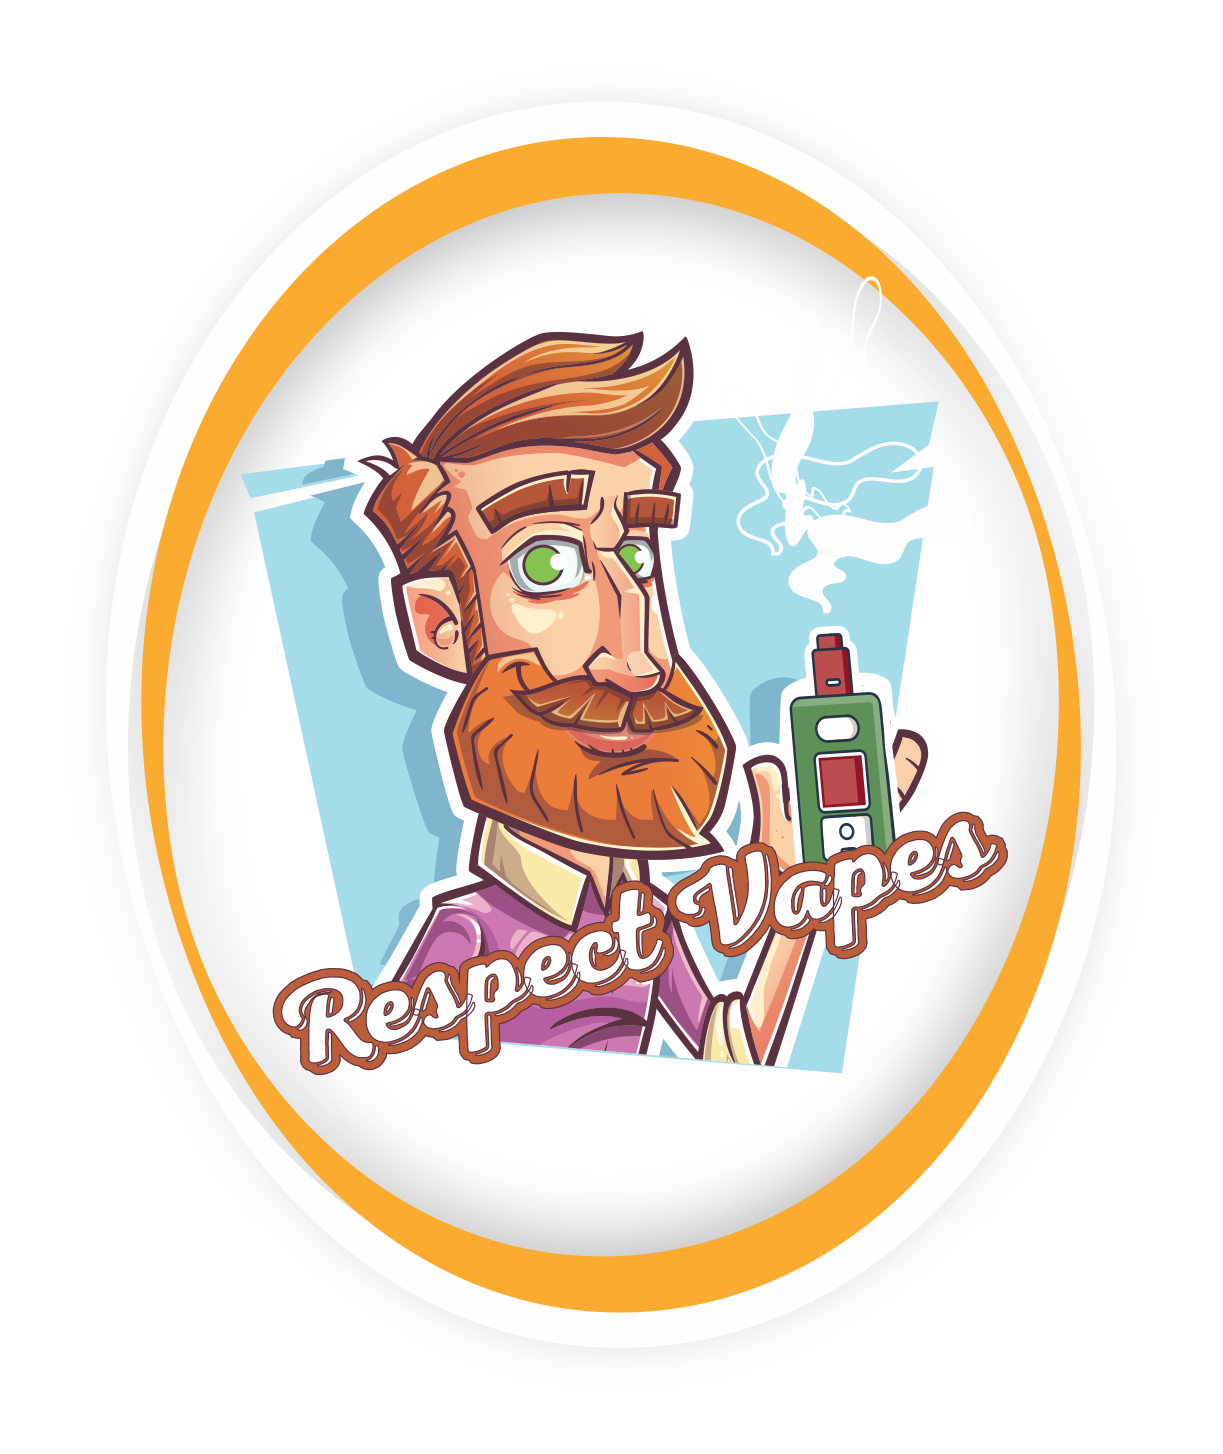 Rspect Vapes